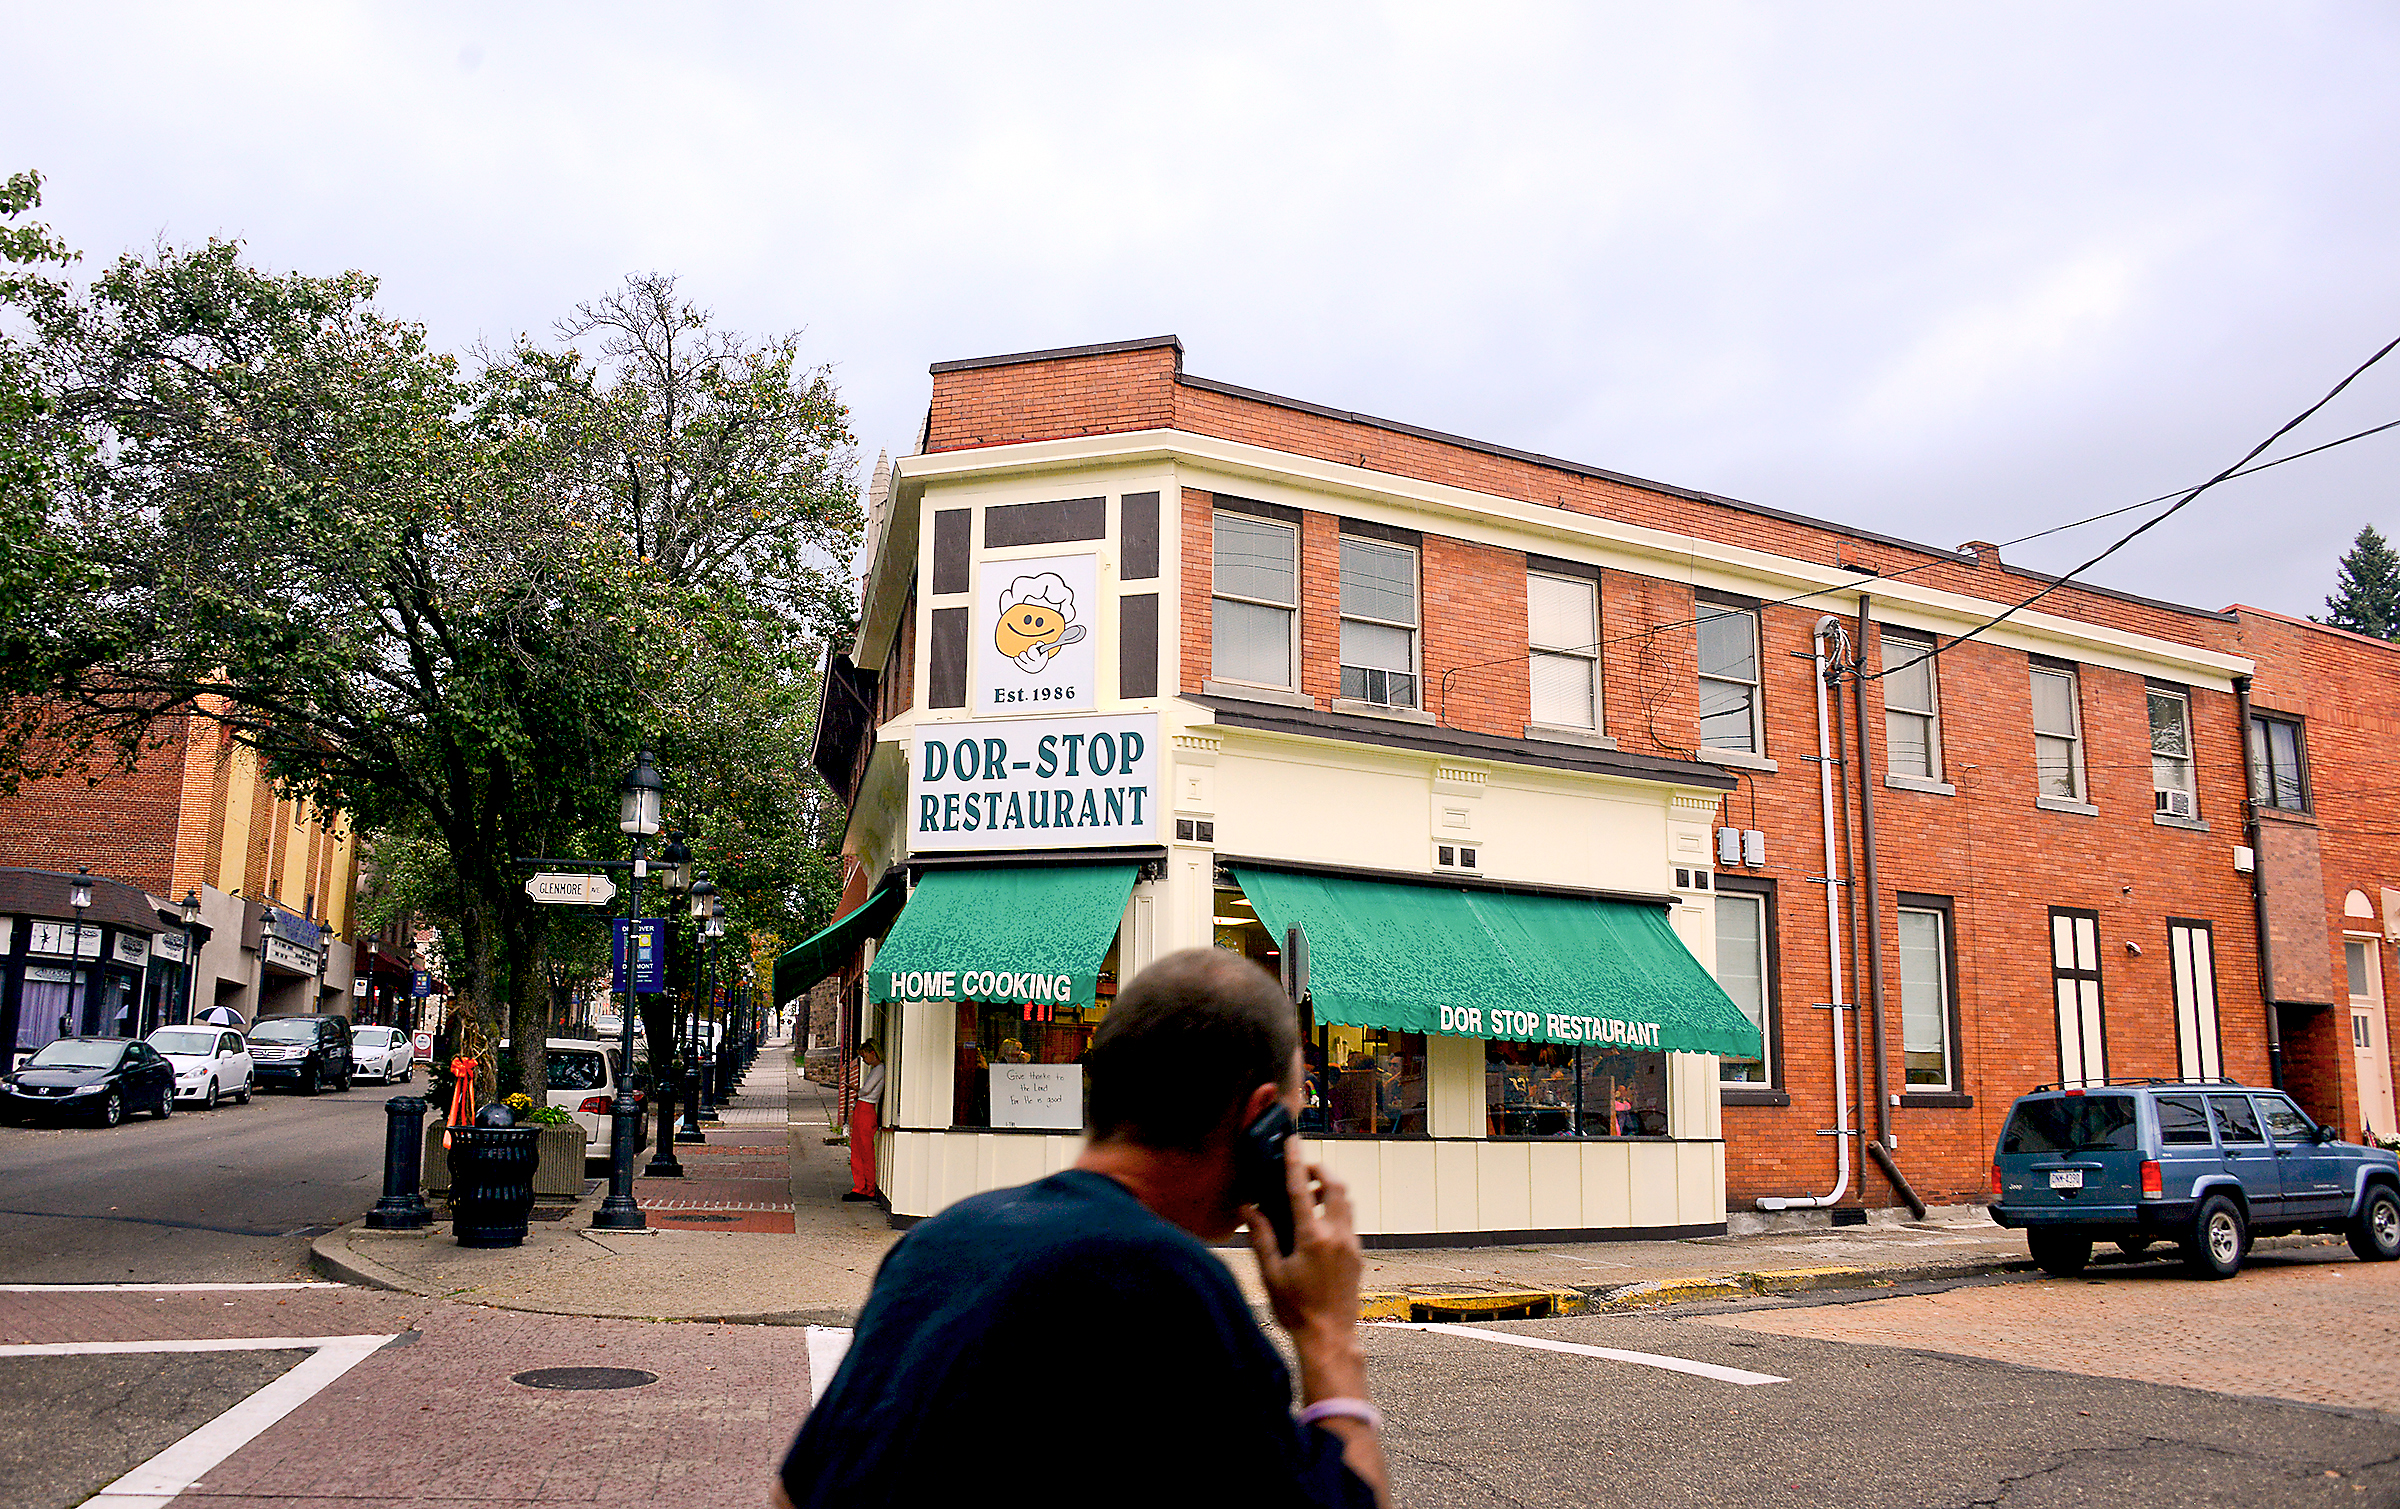 20151009lf-Restaurant03-1 The exterior of Dor-Stop Restaurant in Dormont, a popular local breakfast and luncheon spot on Potomac Avenue.